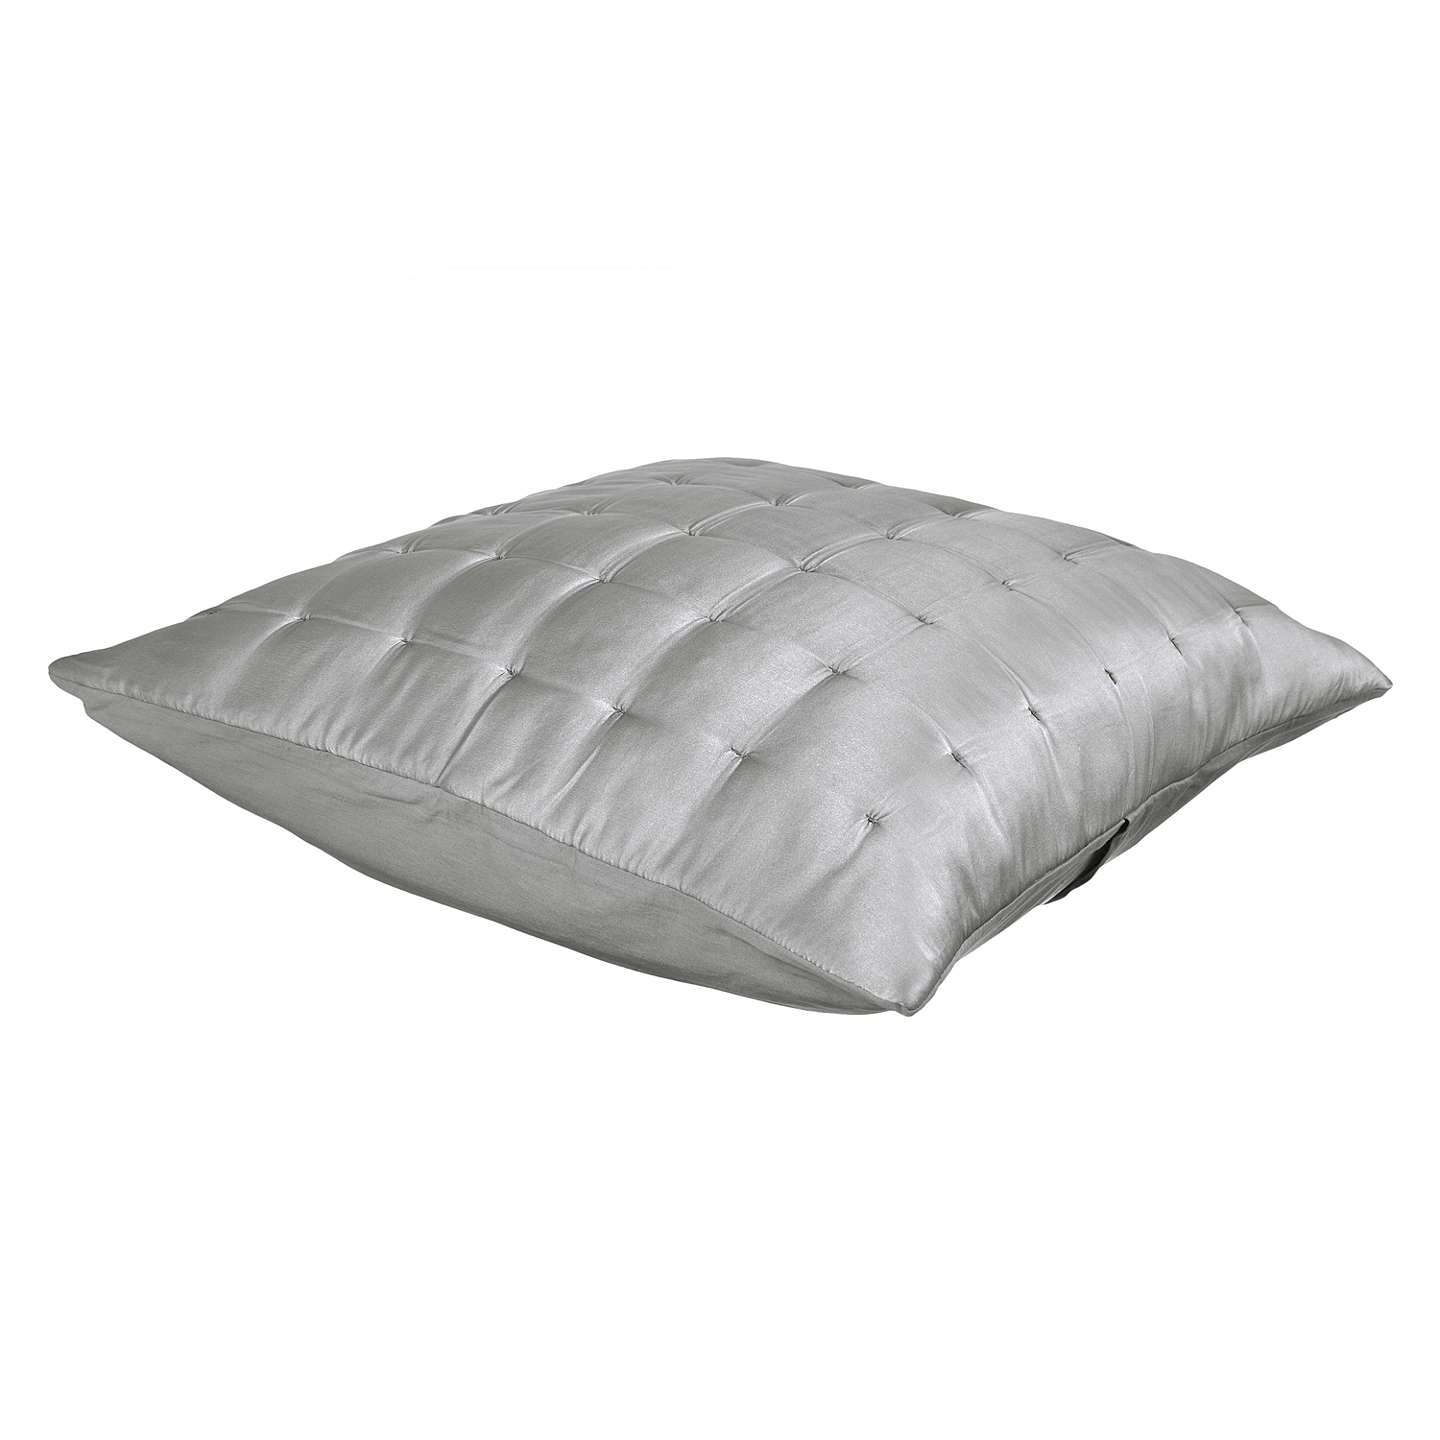 BuyJohn Lewis Boutique Hotel Silk Cushion Cover, Grey Online at johnlewis.com